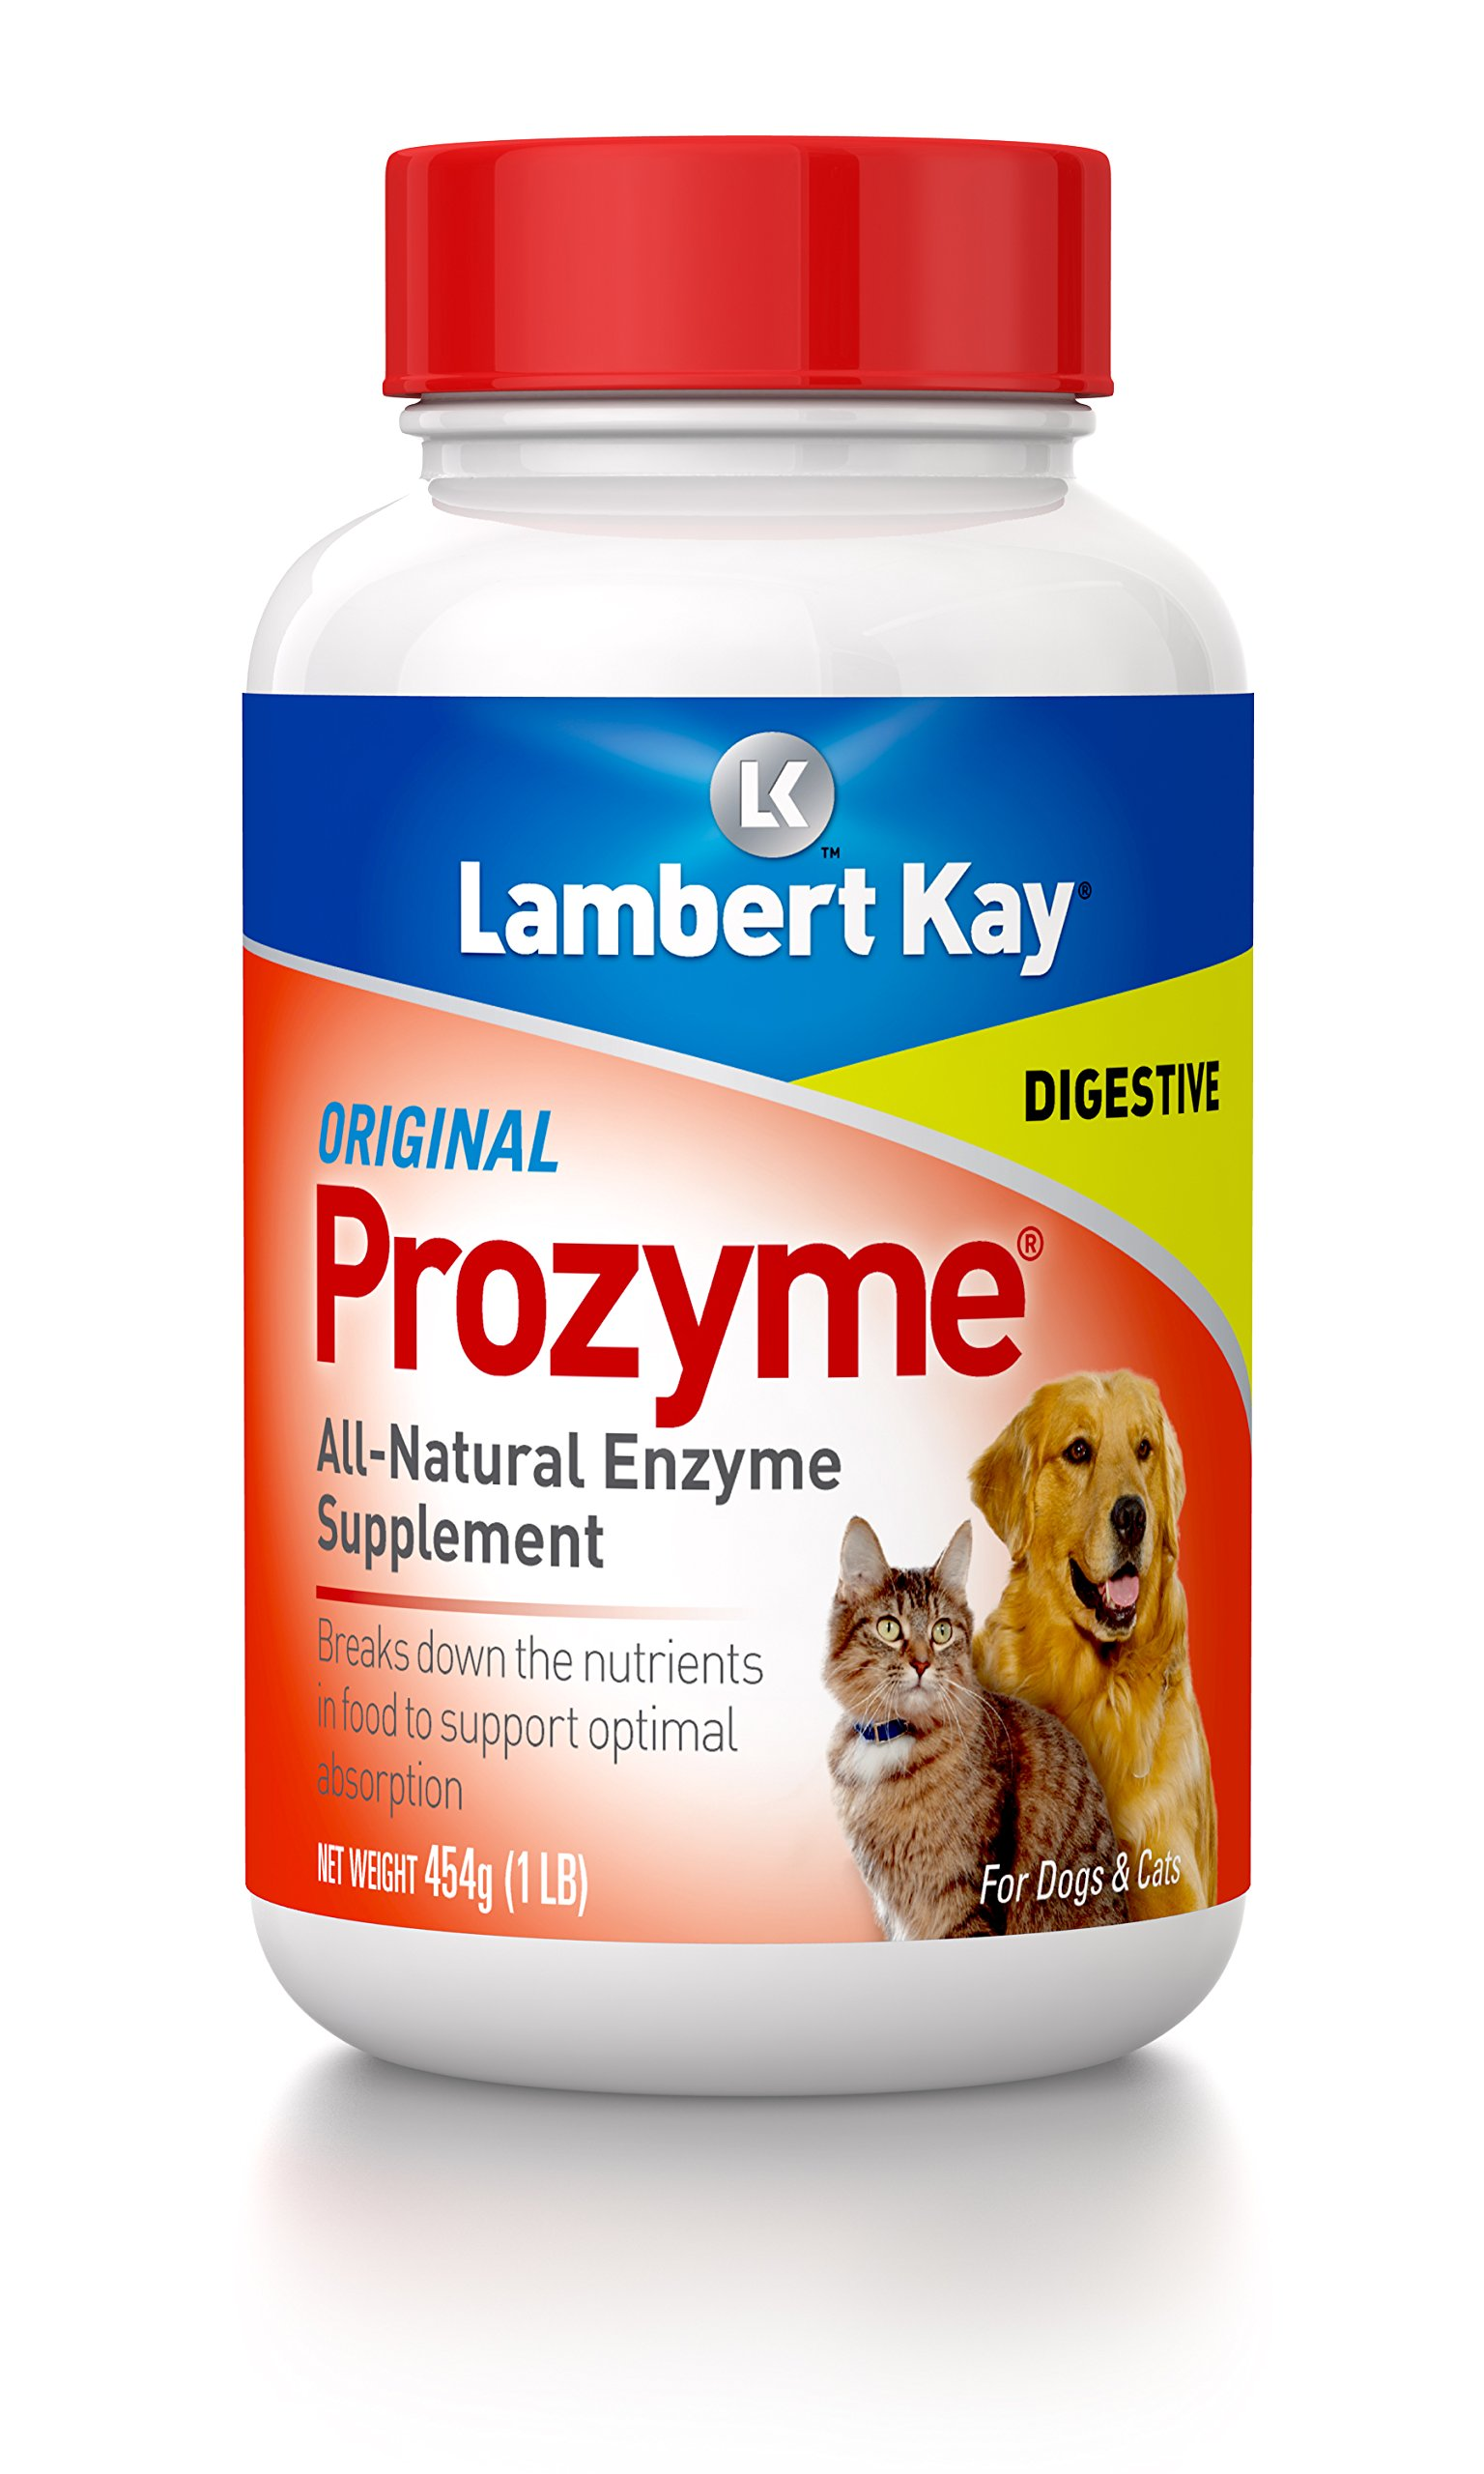 Prozyme Original All-Natural Enzyme Supplement for Dogs and Cats, 454gm by Lambert Kay